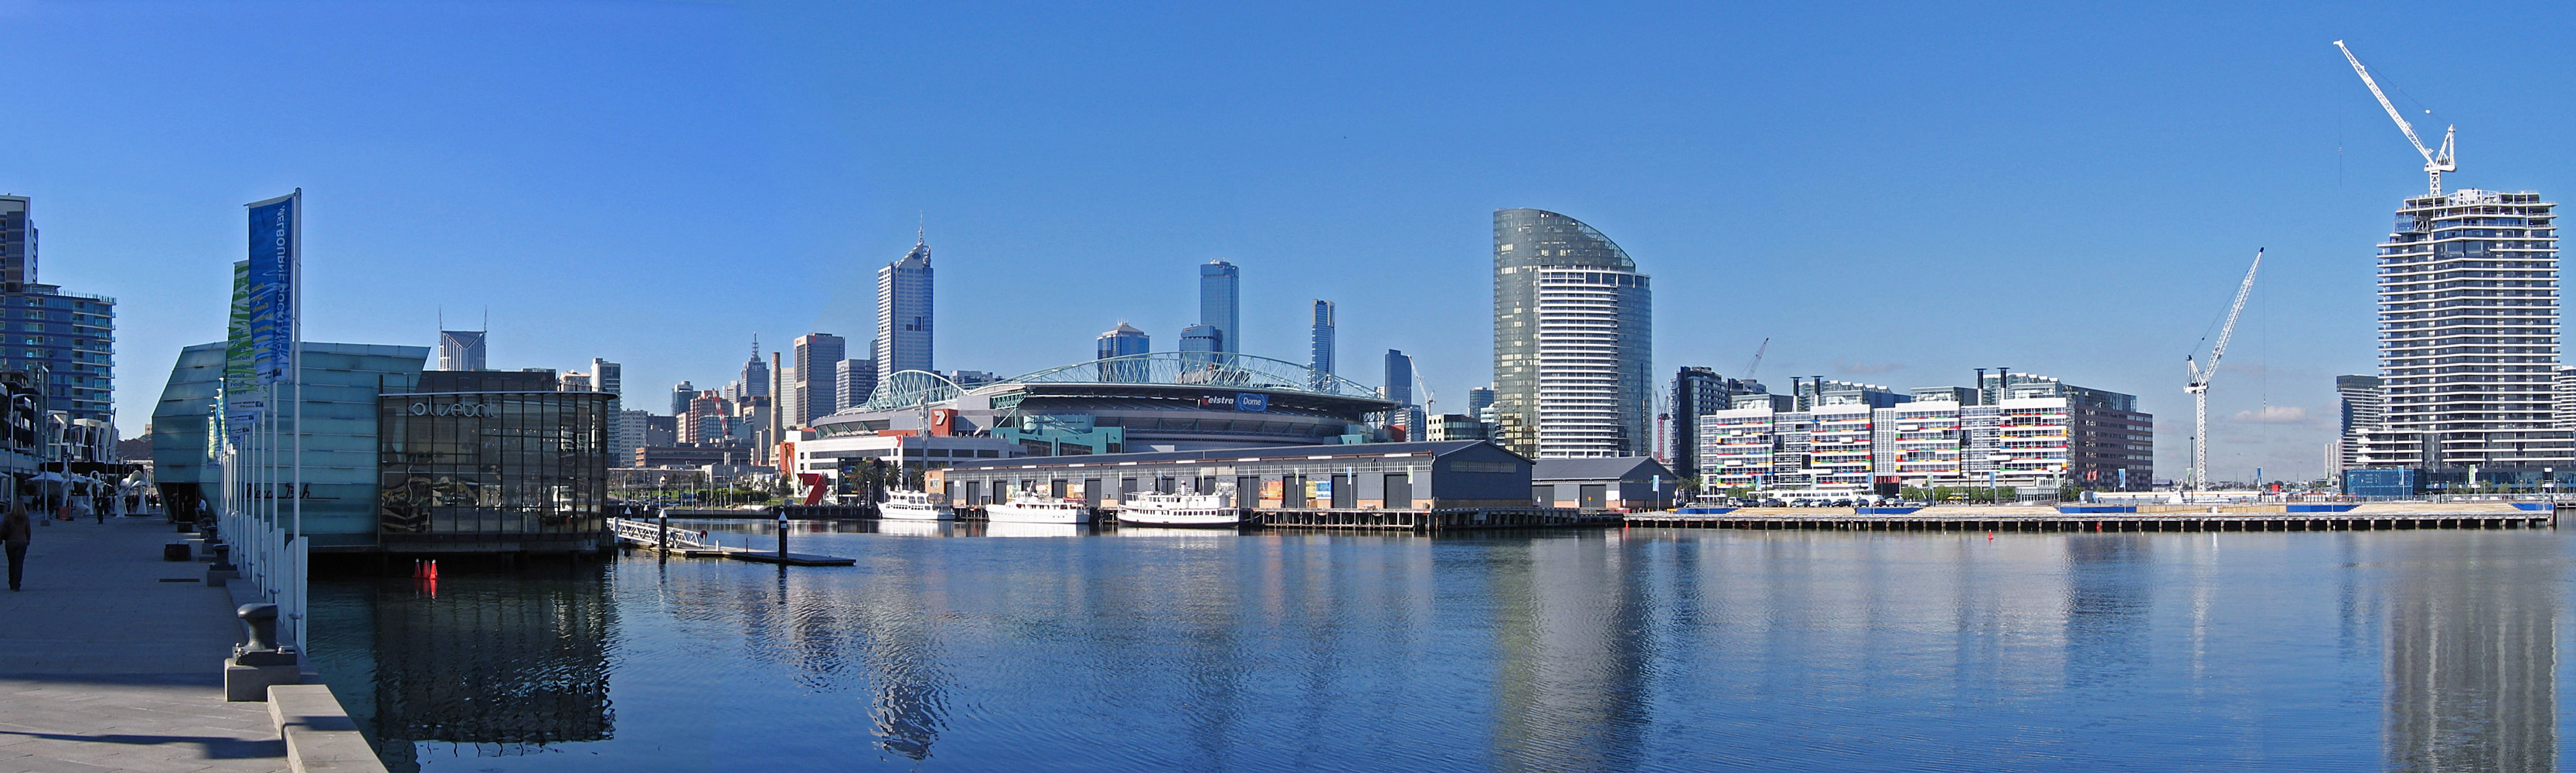 File:Melbourne from Waterfront City, Docklands Pano, 20.07.06.jpg ...